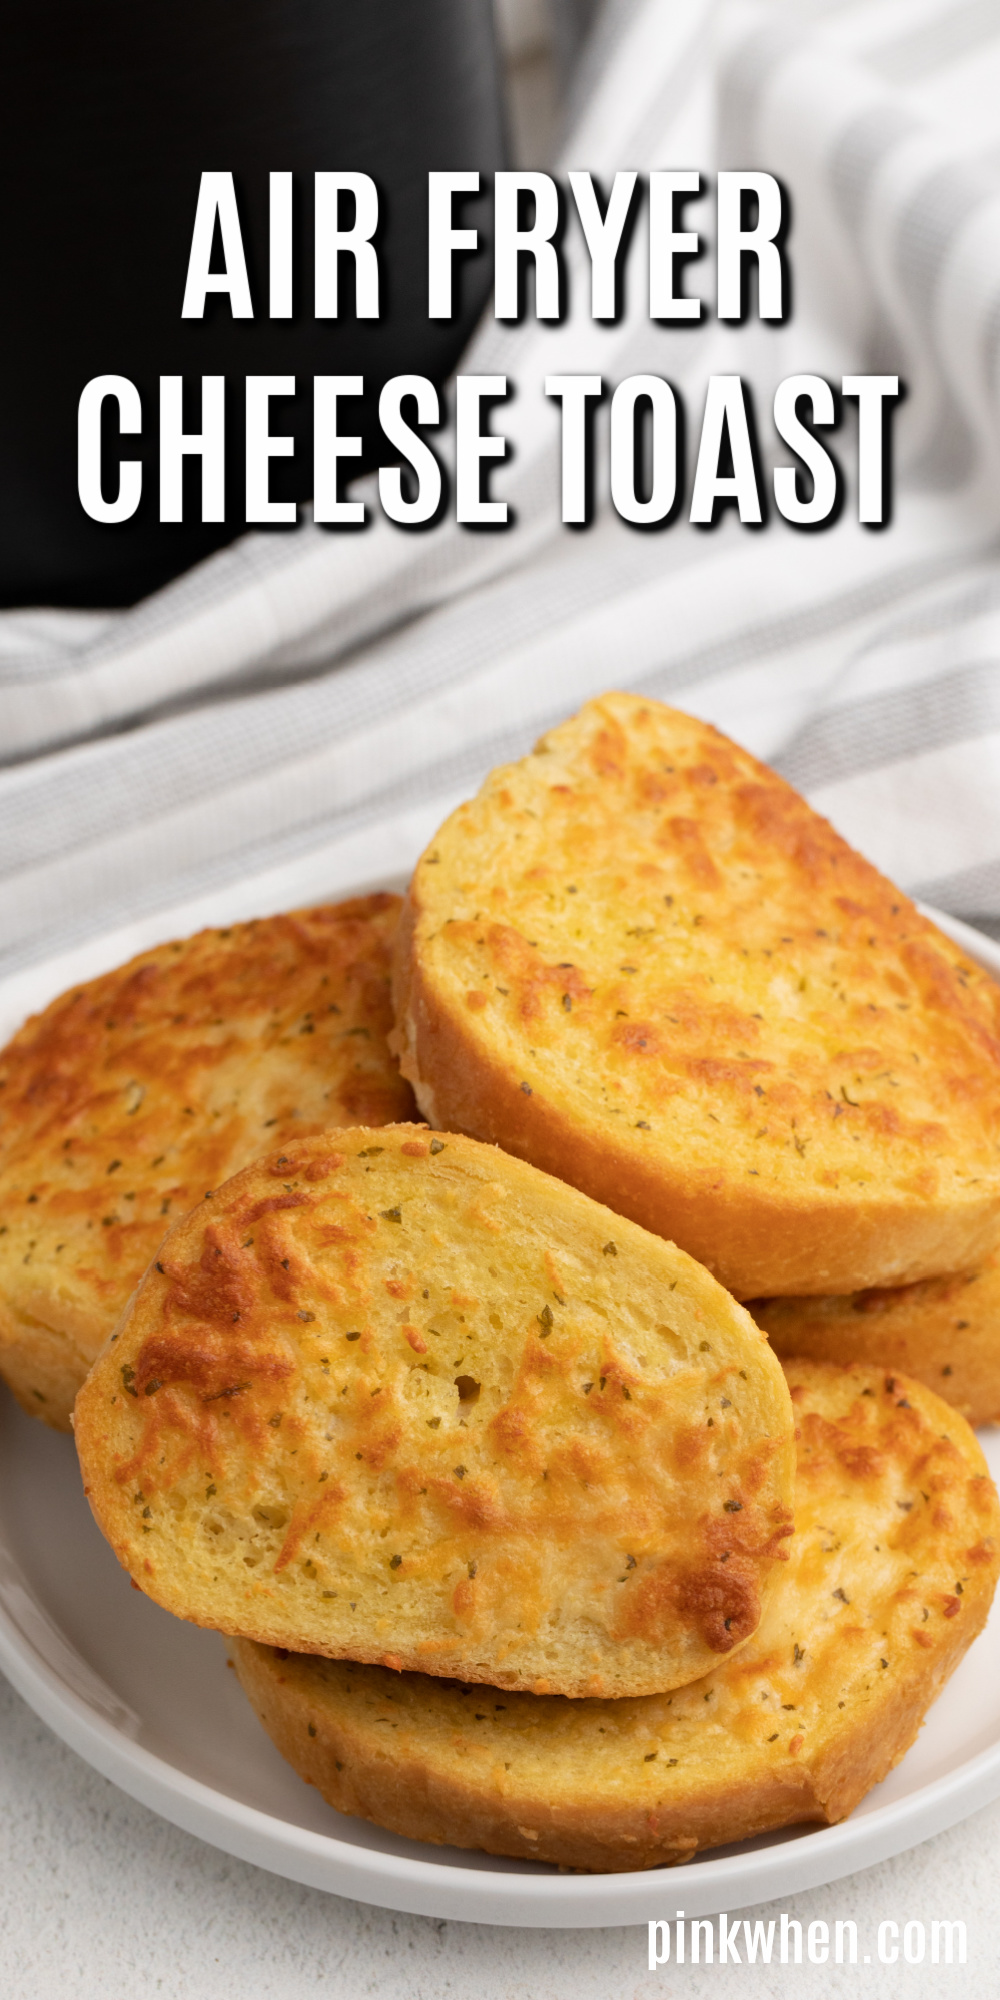 Air Fryer Texas Cheese Toast - Using the air fryer for this simple cheese toast really brings out a level of crunch that just can't happen with any other cooking method. You'll love this quick and easy air fryer recipe.